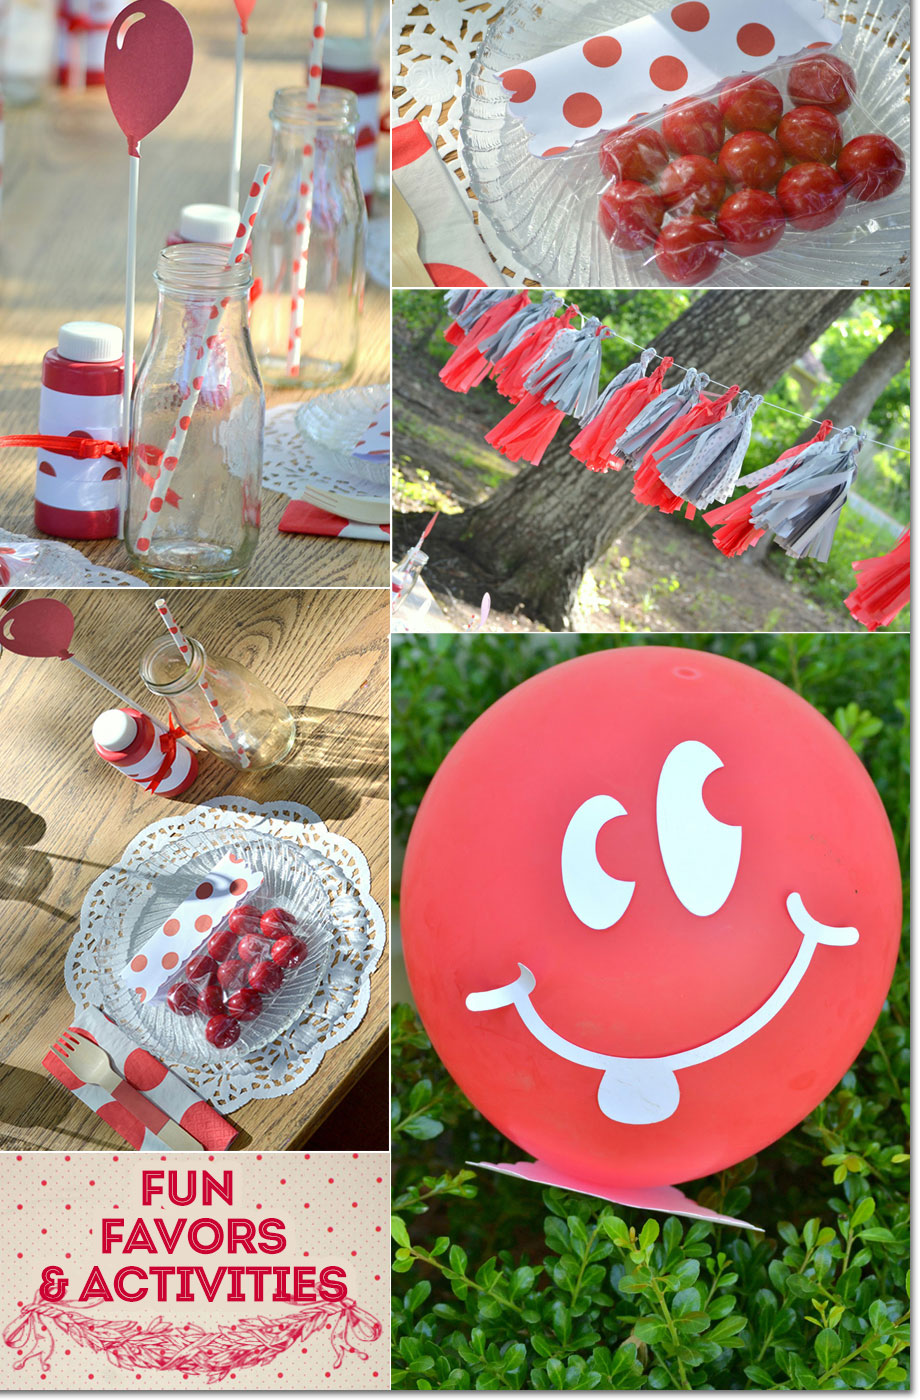 Red and white favors and table decorations from red bubble gum favors to bubbles to balloons